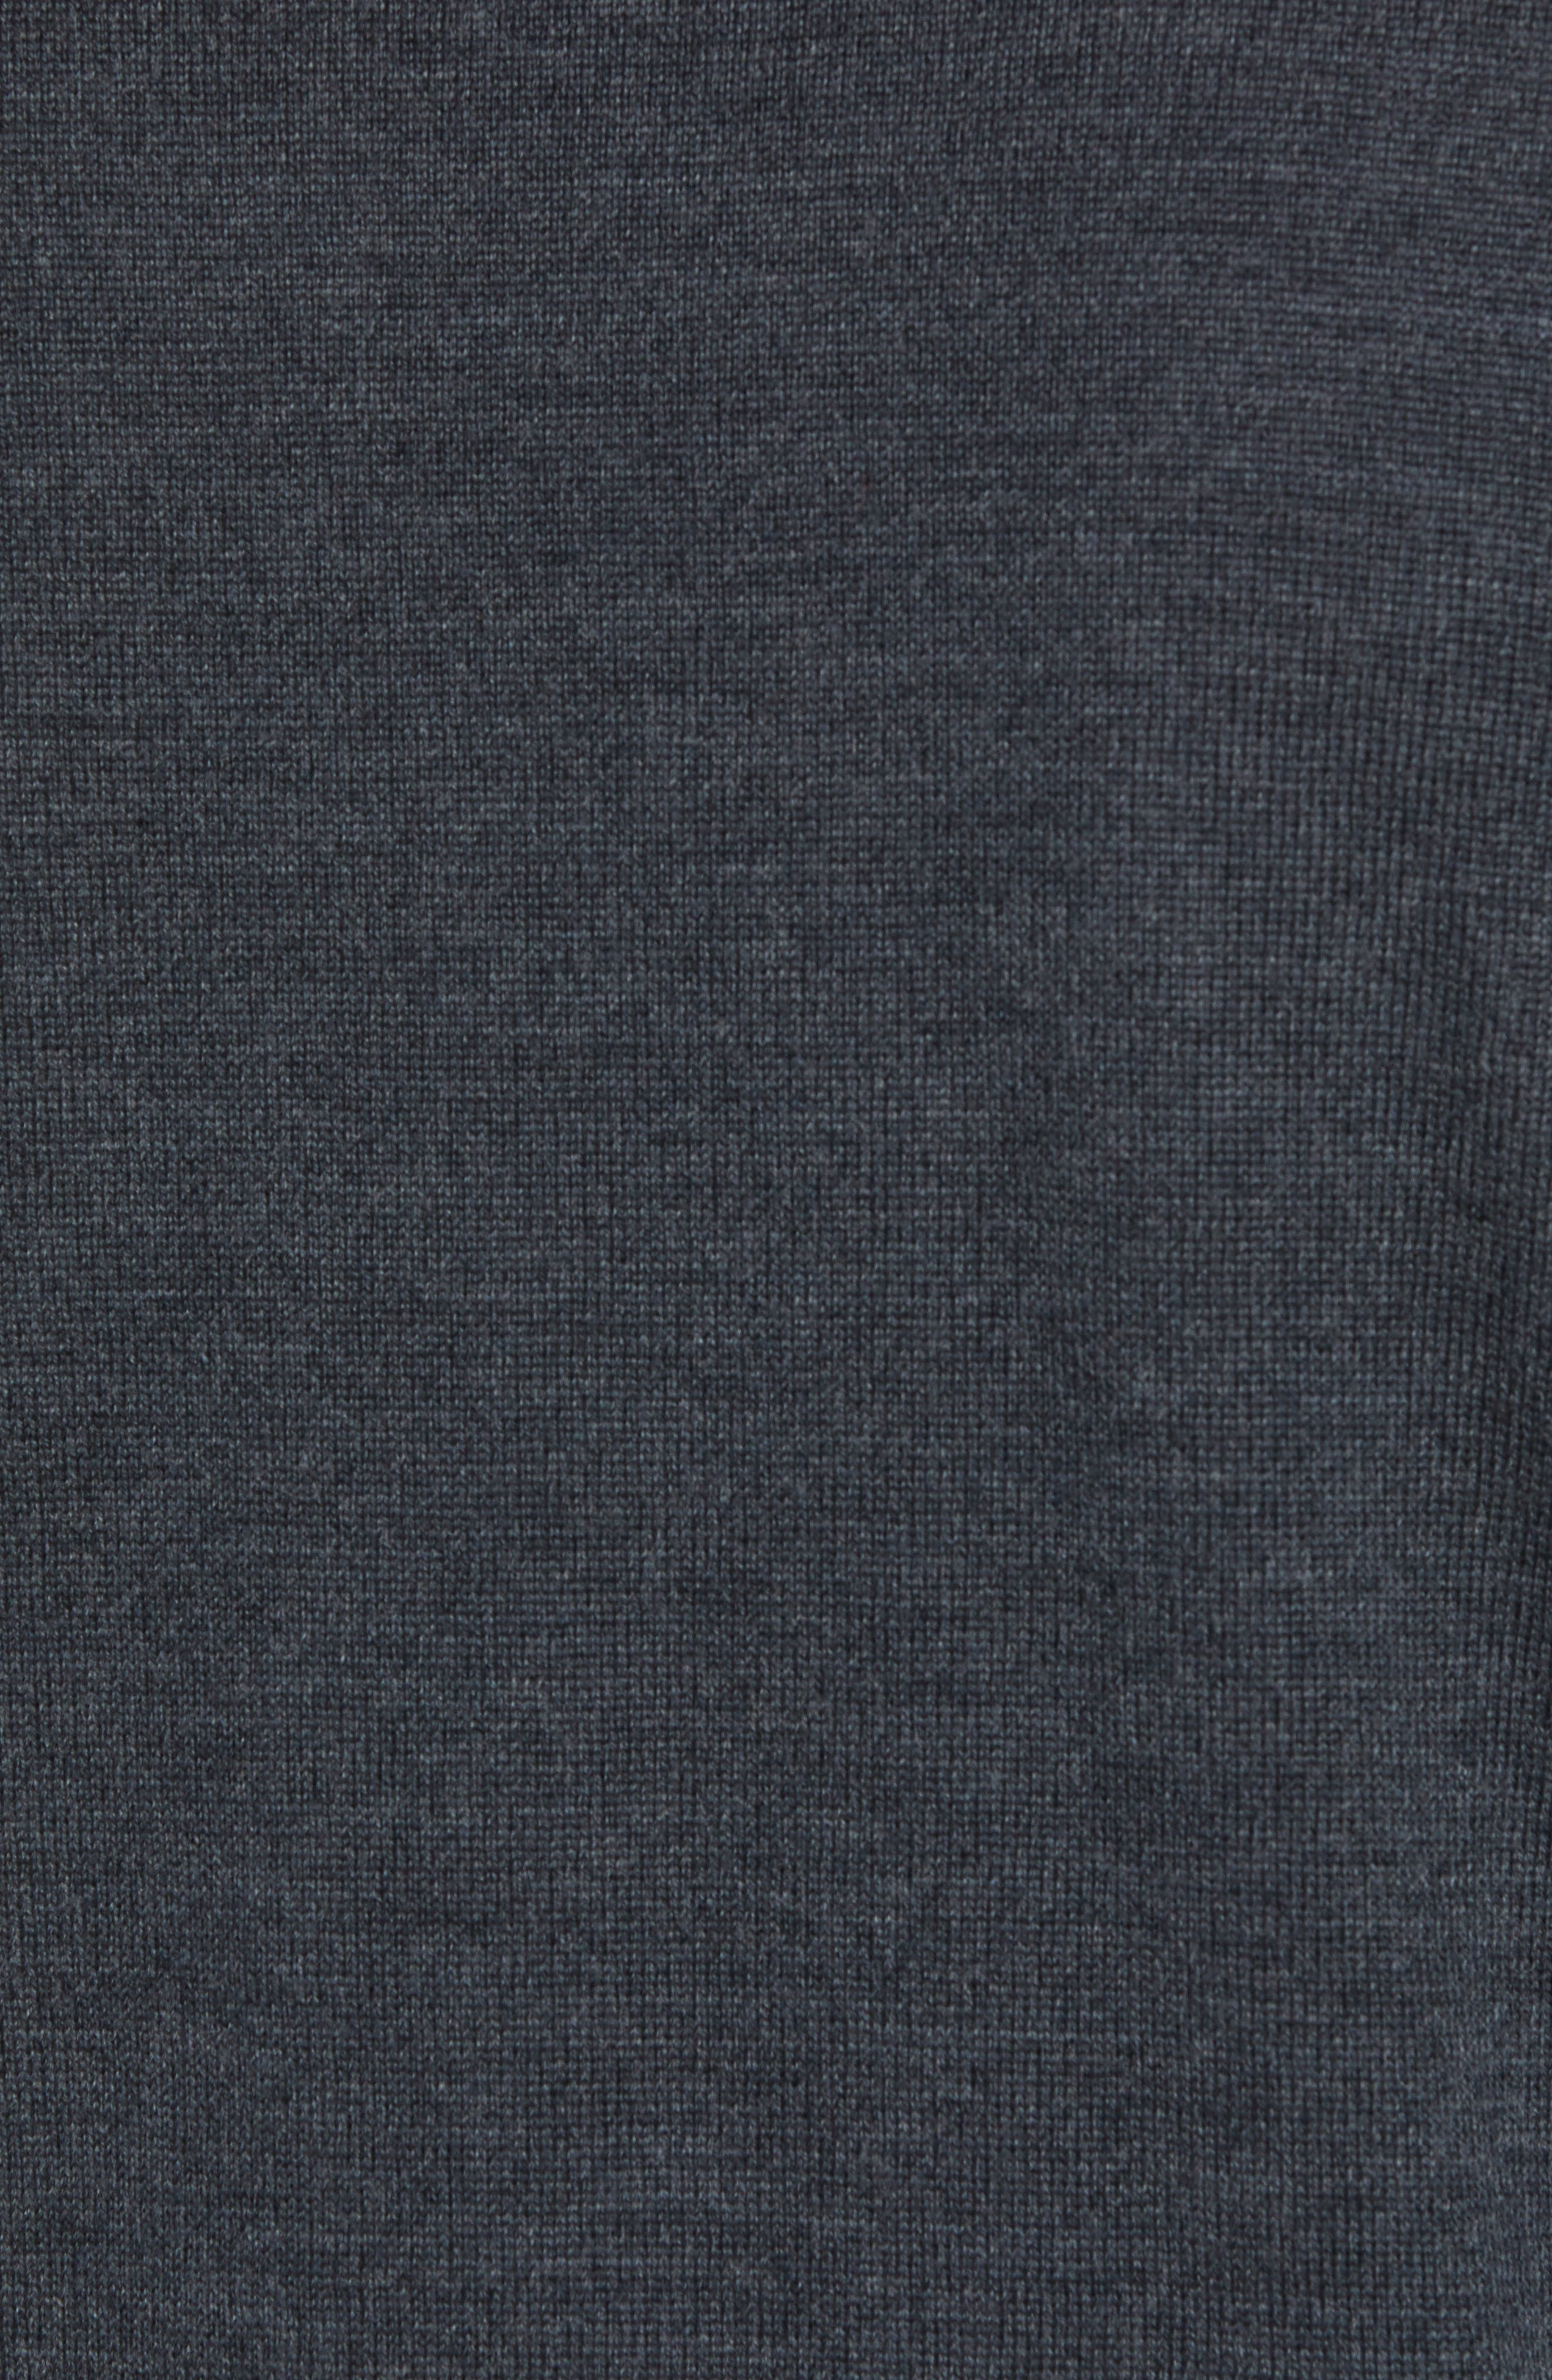 Slim Fit V-Neck Merino Wool Sweater,                             Alternate thumbnail 5, color,                             HEATHER CHARCOAL